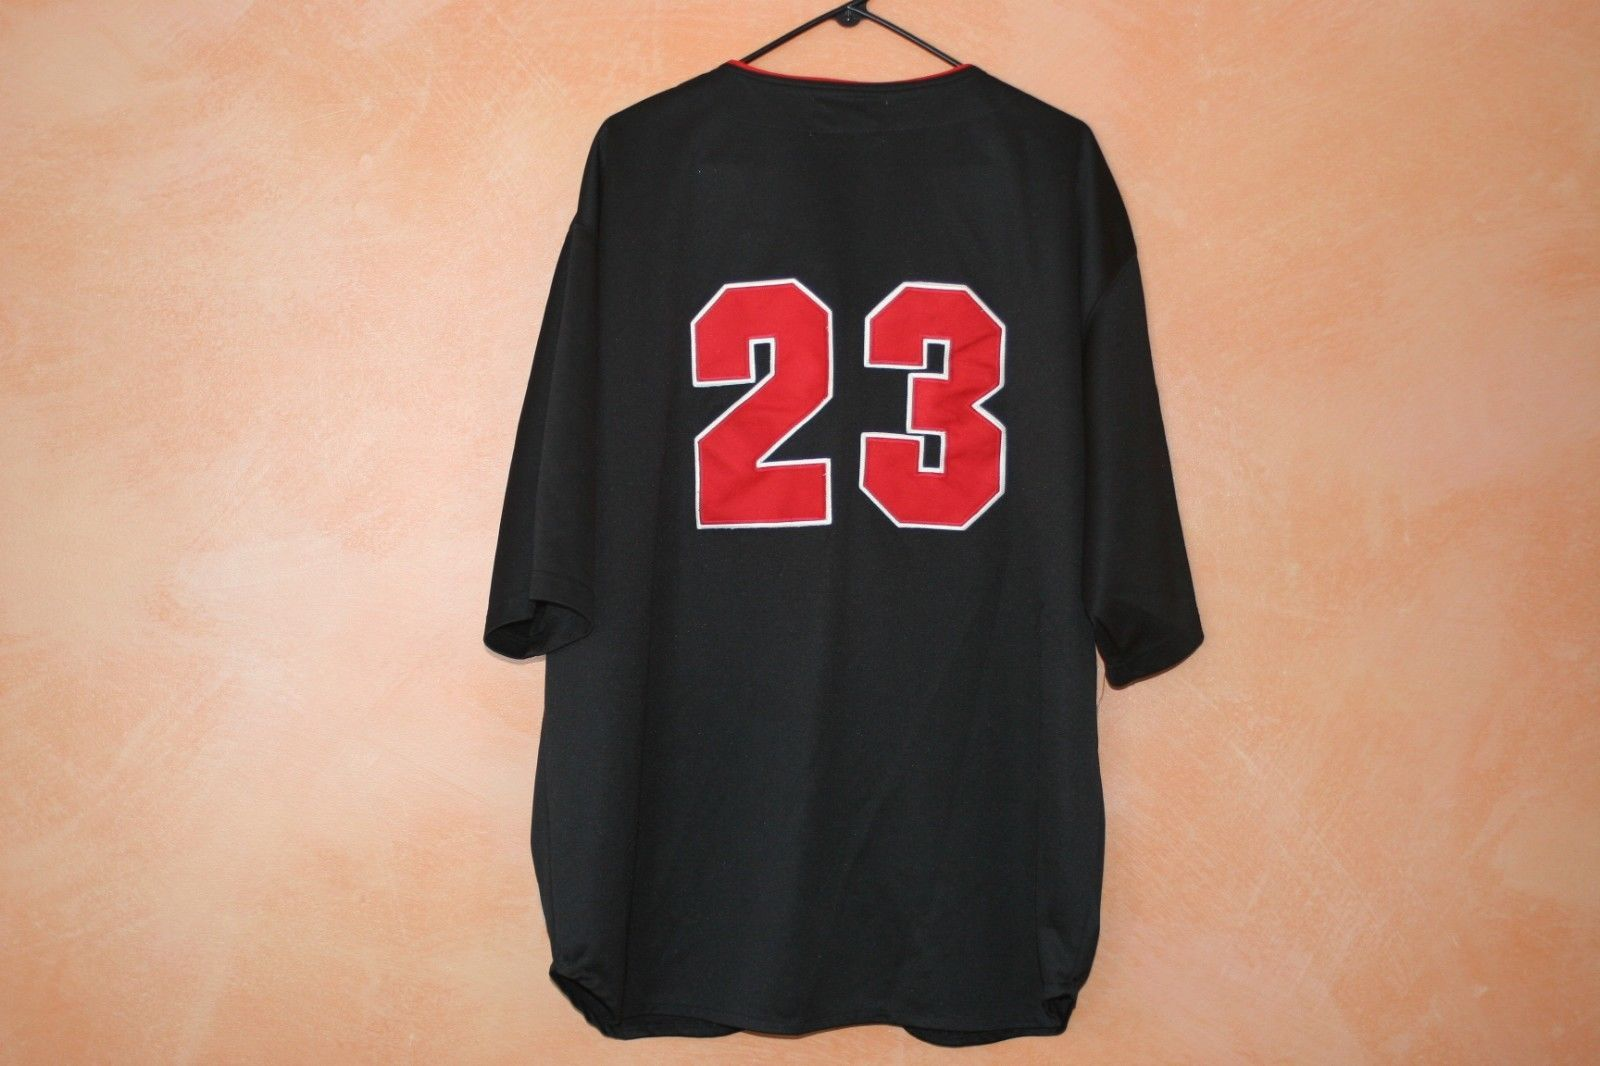 Chicago Cubs #23 All Star Baseball Jersey Stardom Limited Edition Stadium Series image 2